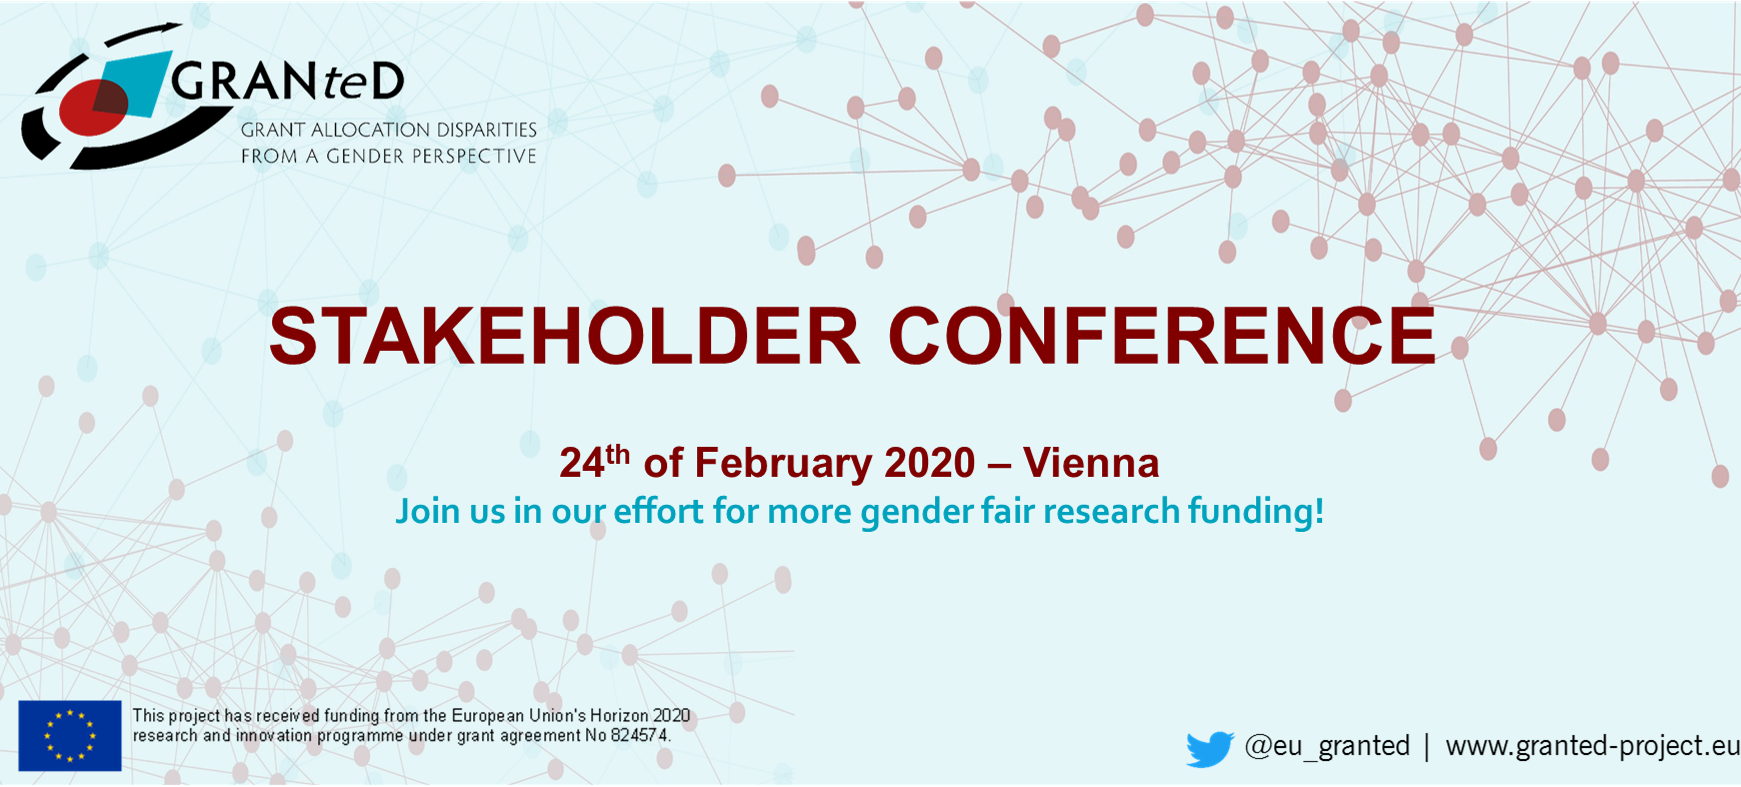 GRANteD_Stakeholder_Conference_24-Feb-2020